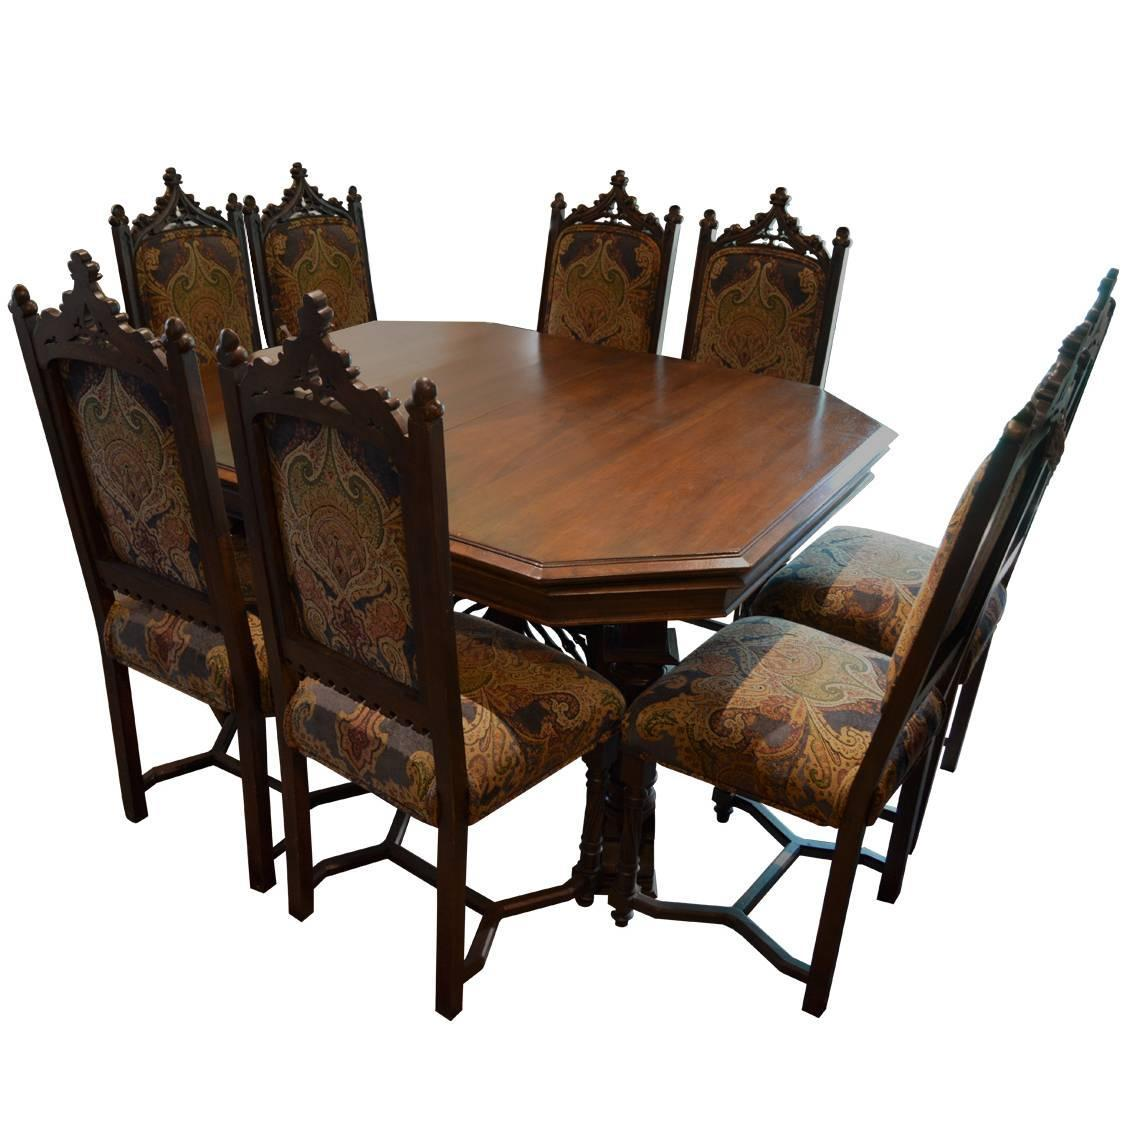 medieval dining chairs dxr racing chair uk antique gothic style table with eight